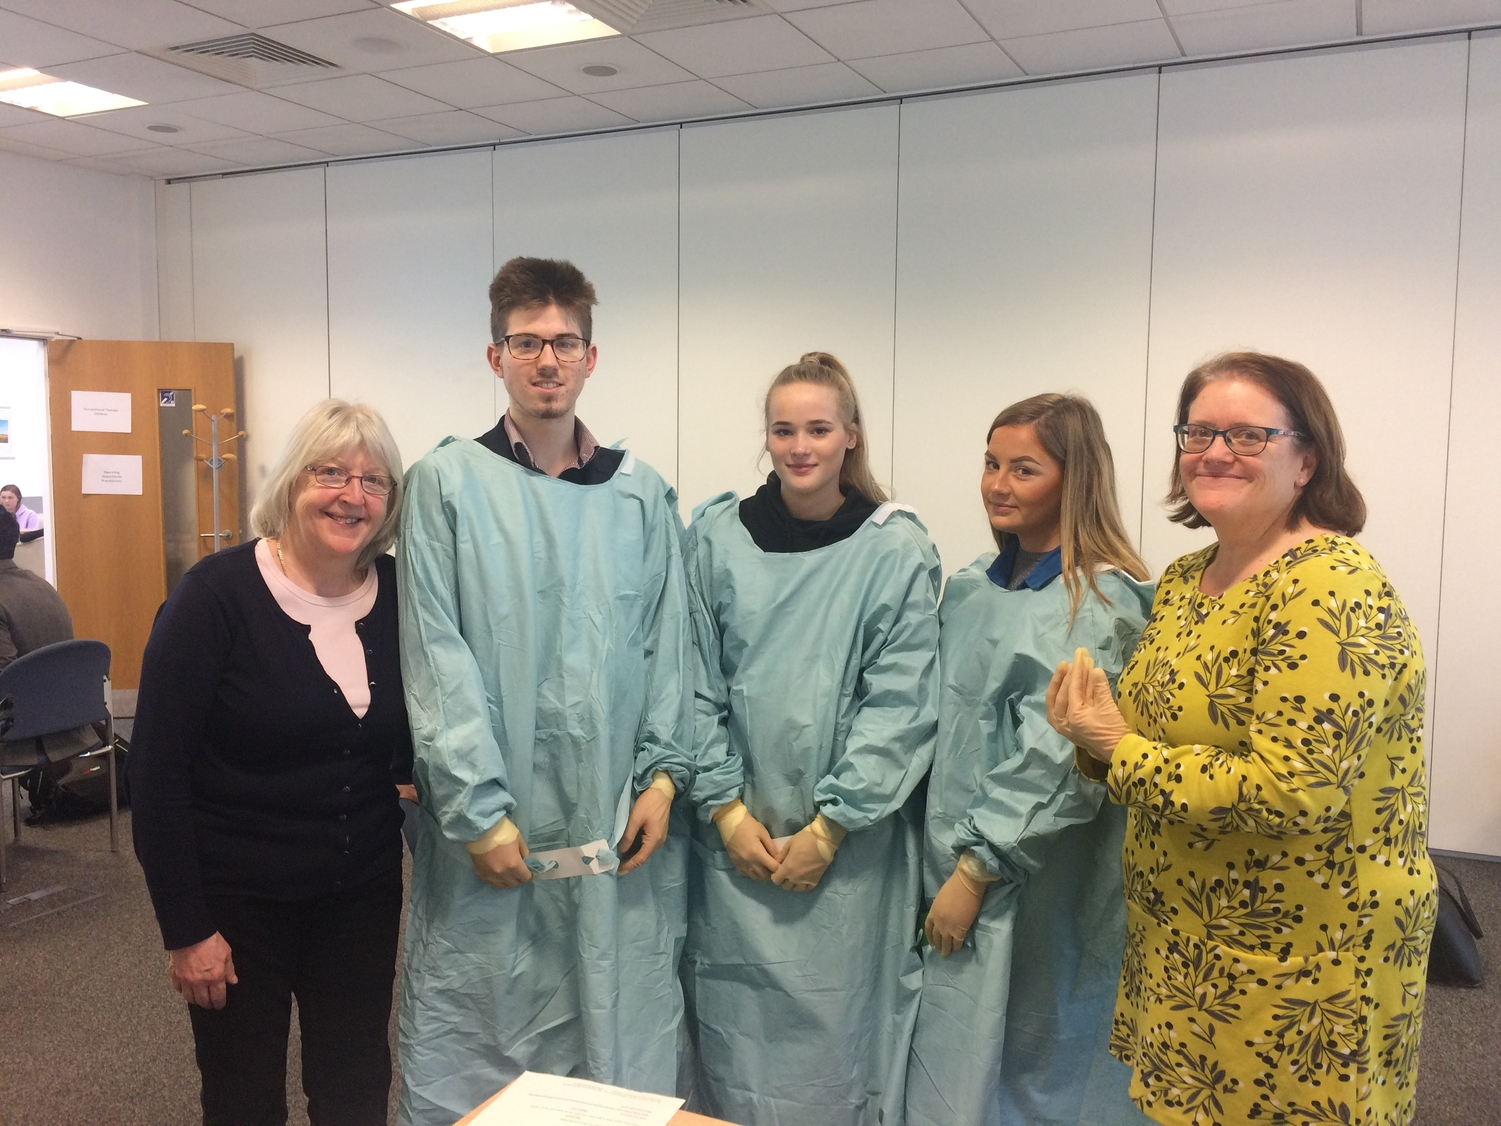 Masterclass gives students insight into health careers